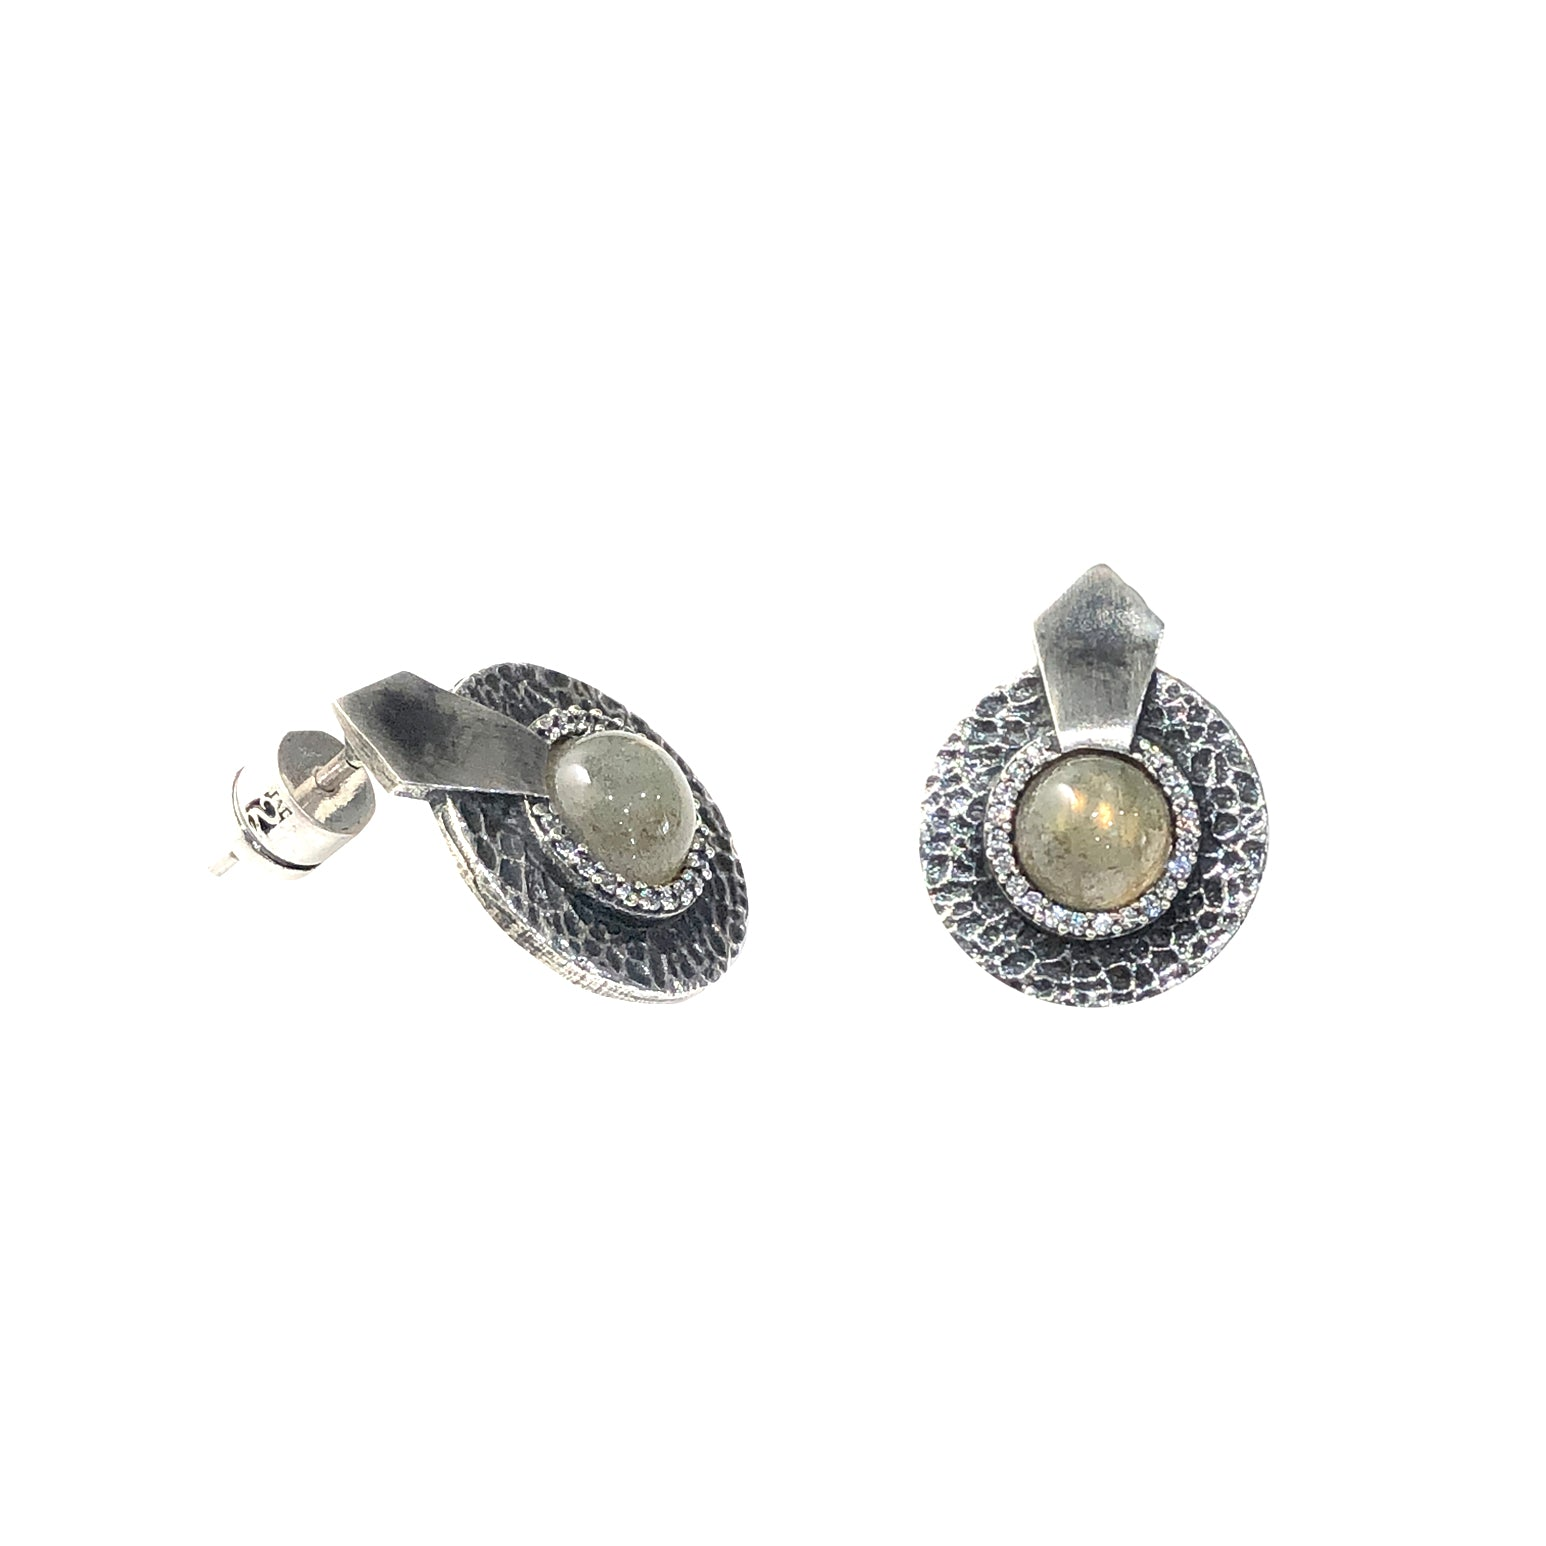 VINTAGE SILVER LABRADORITE HAMMERED MINI CIRCULAR SHIELD EARRINGS